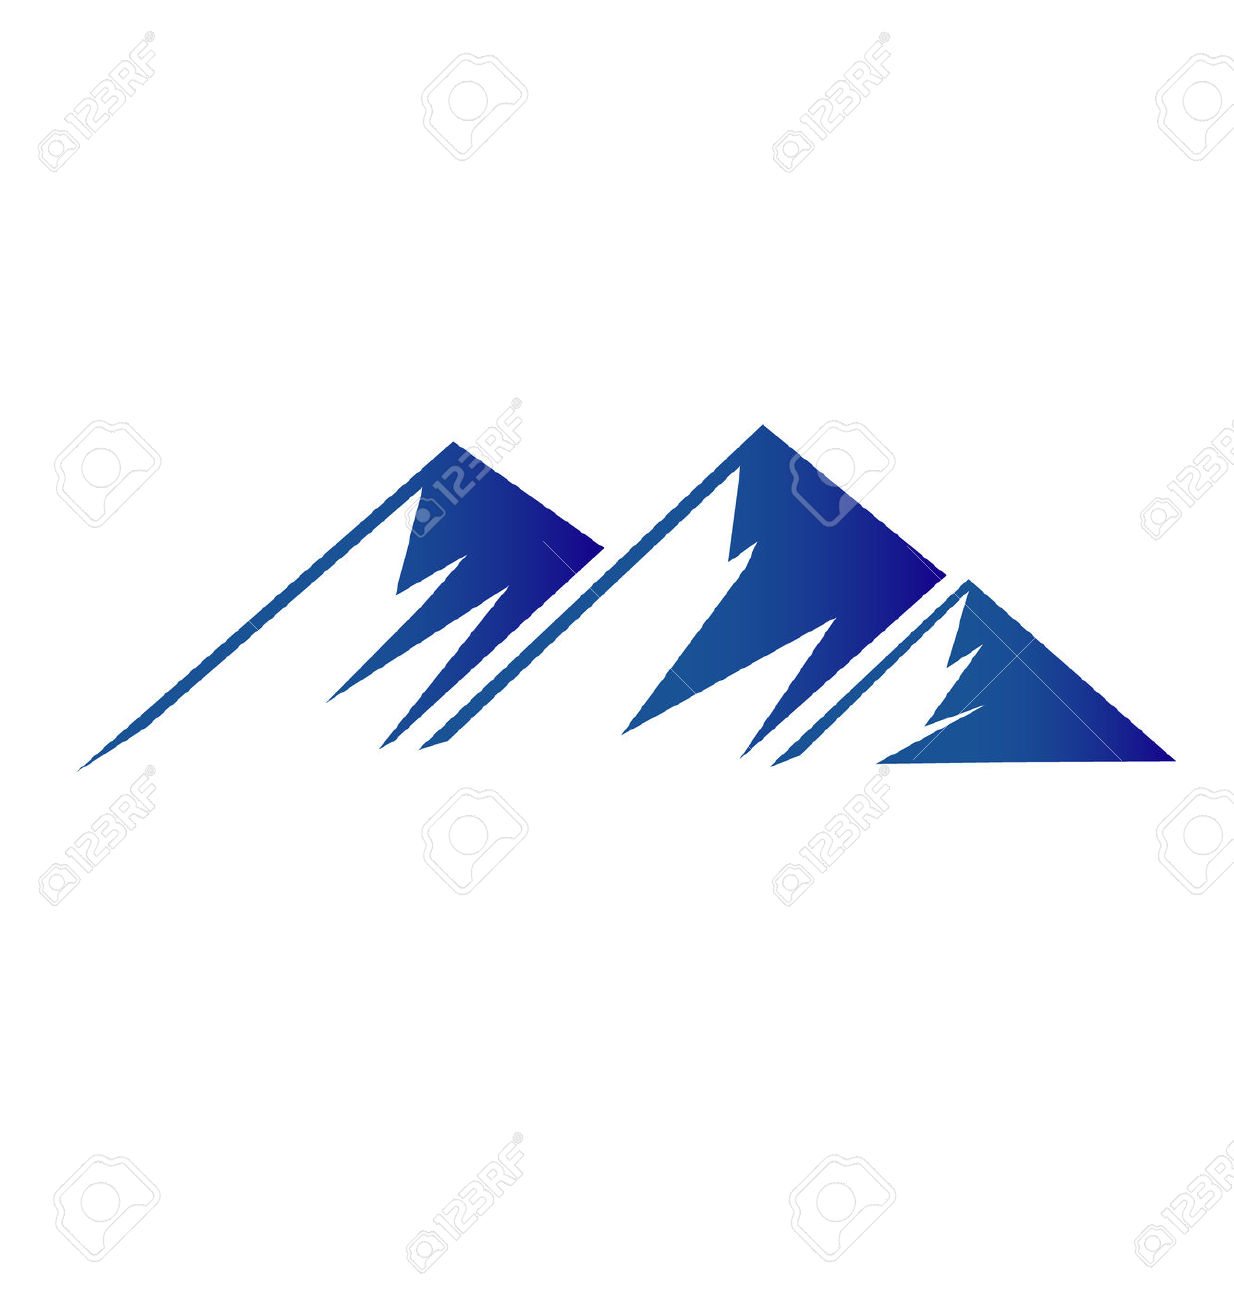 vector mountain silhouette at getdrawings com free for personal rh getdrawings com mountain vector line art mountain vector clip art